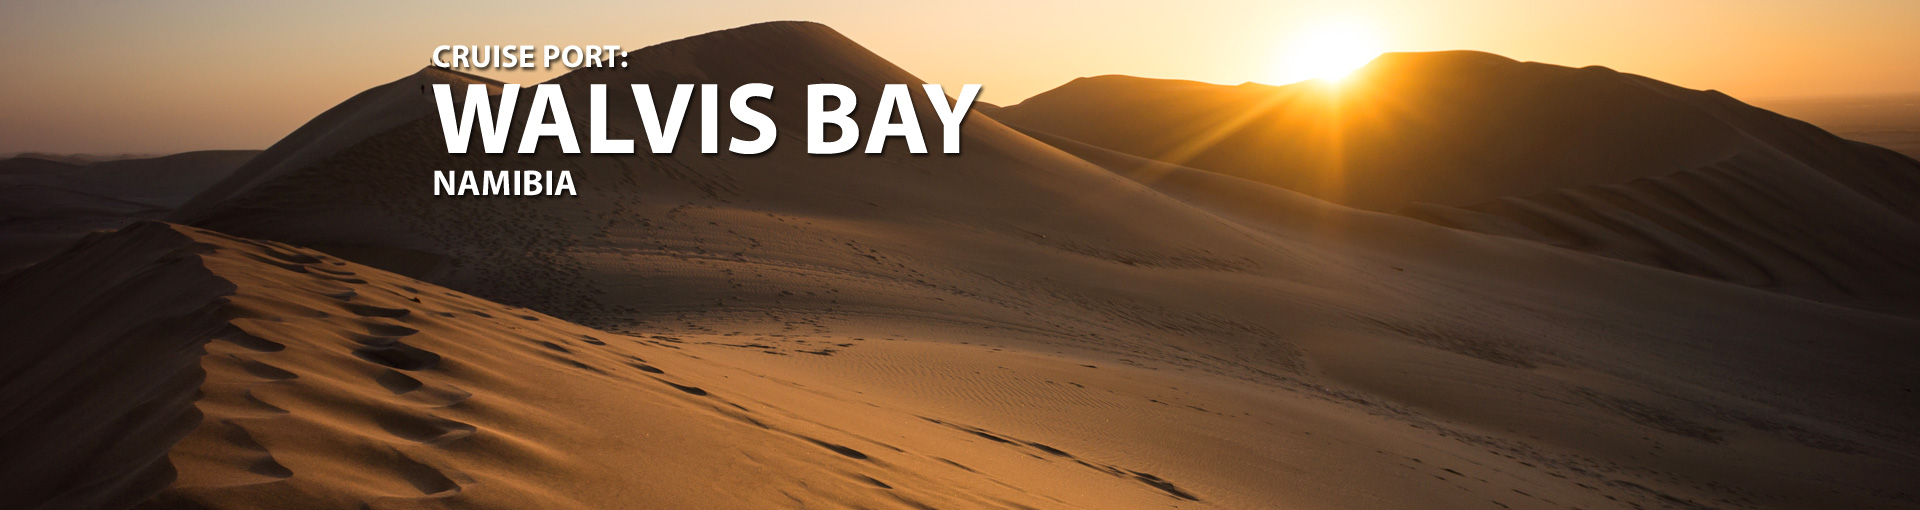 Cruises to Walvis Bay, Namibia